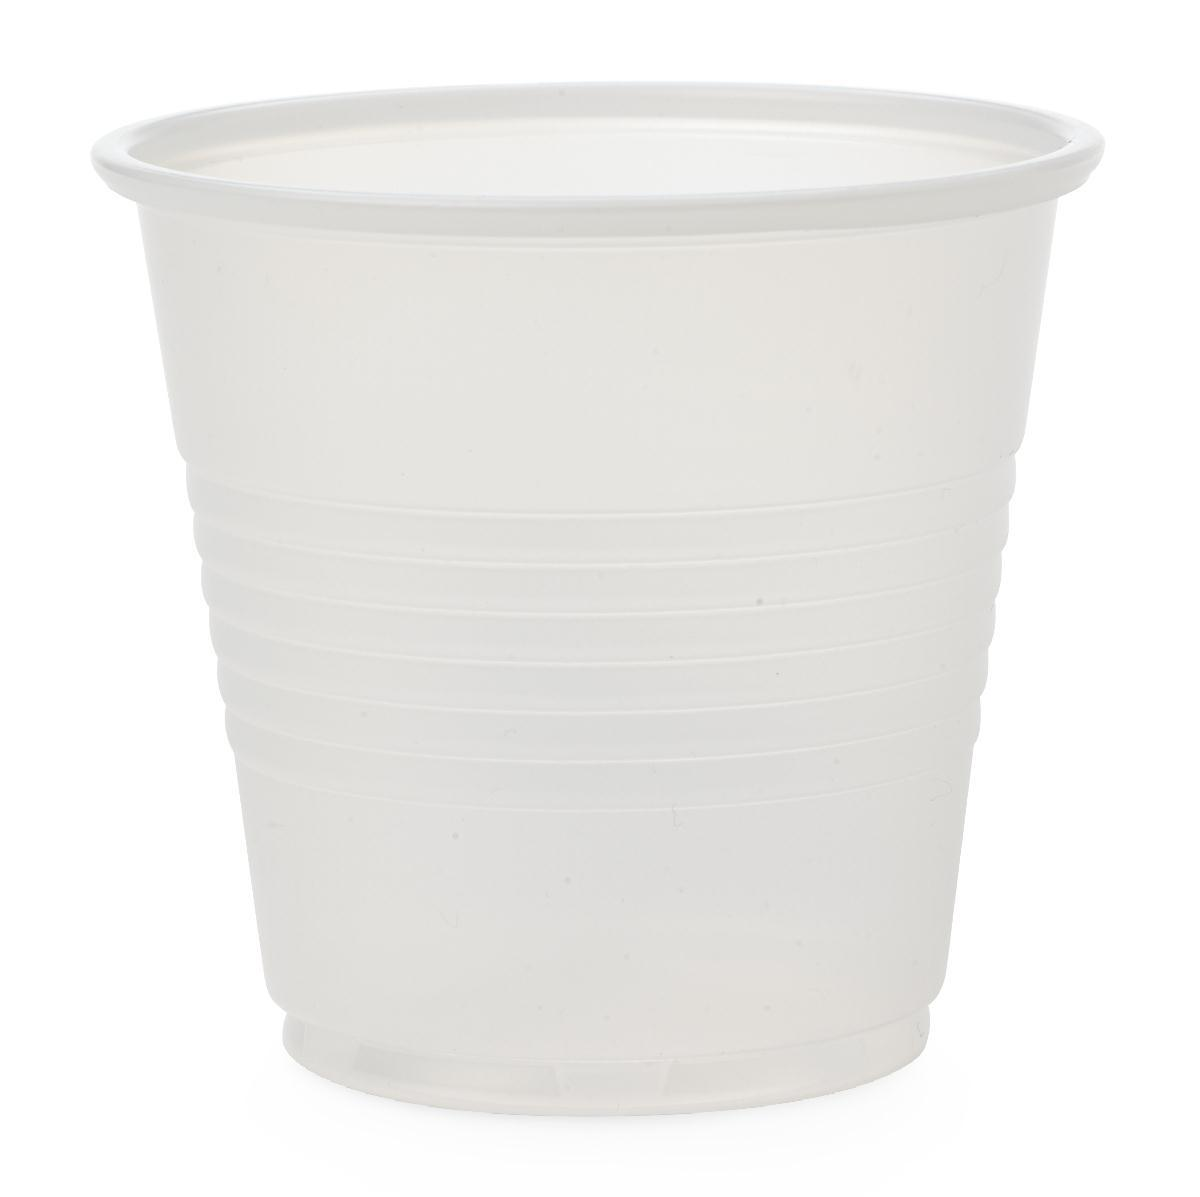 Cup Plastic 3.5 Oz Translucent - Non030035 - Food Service Drinking Cups Glasses NON030035